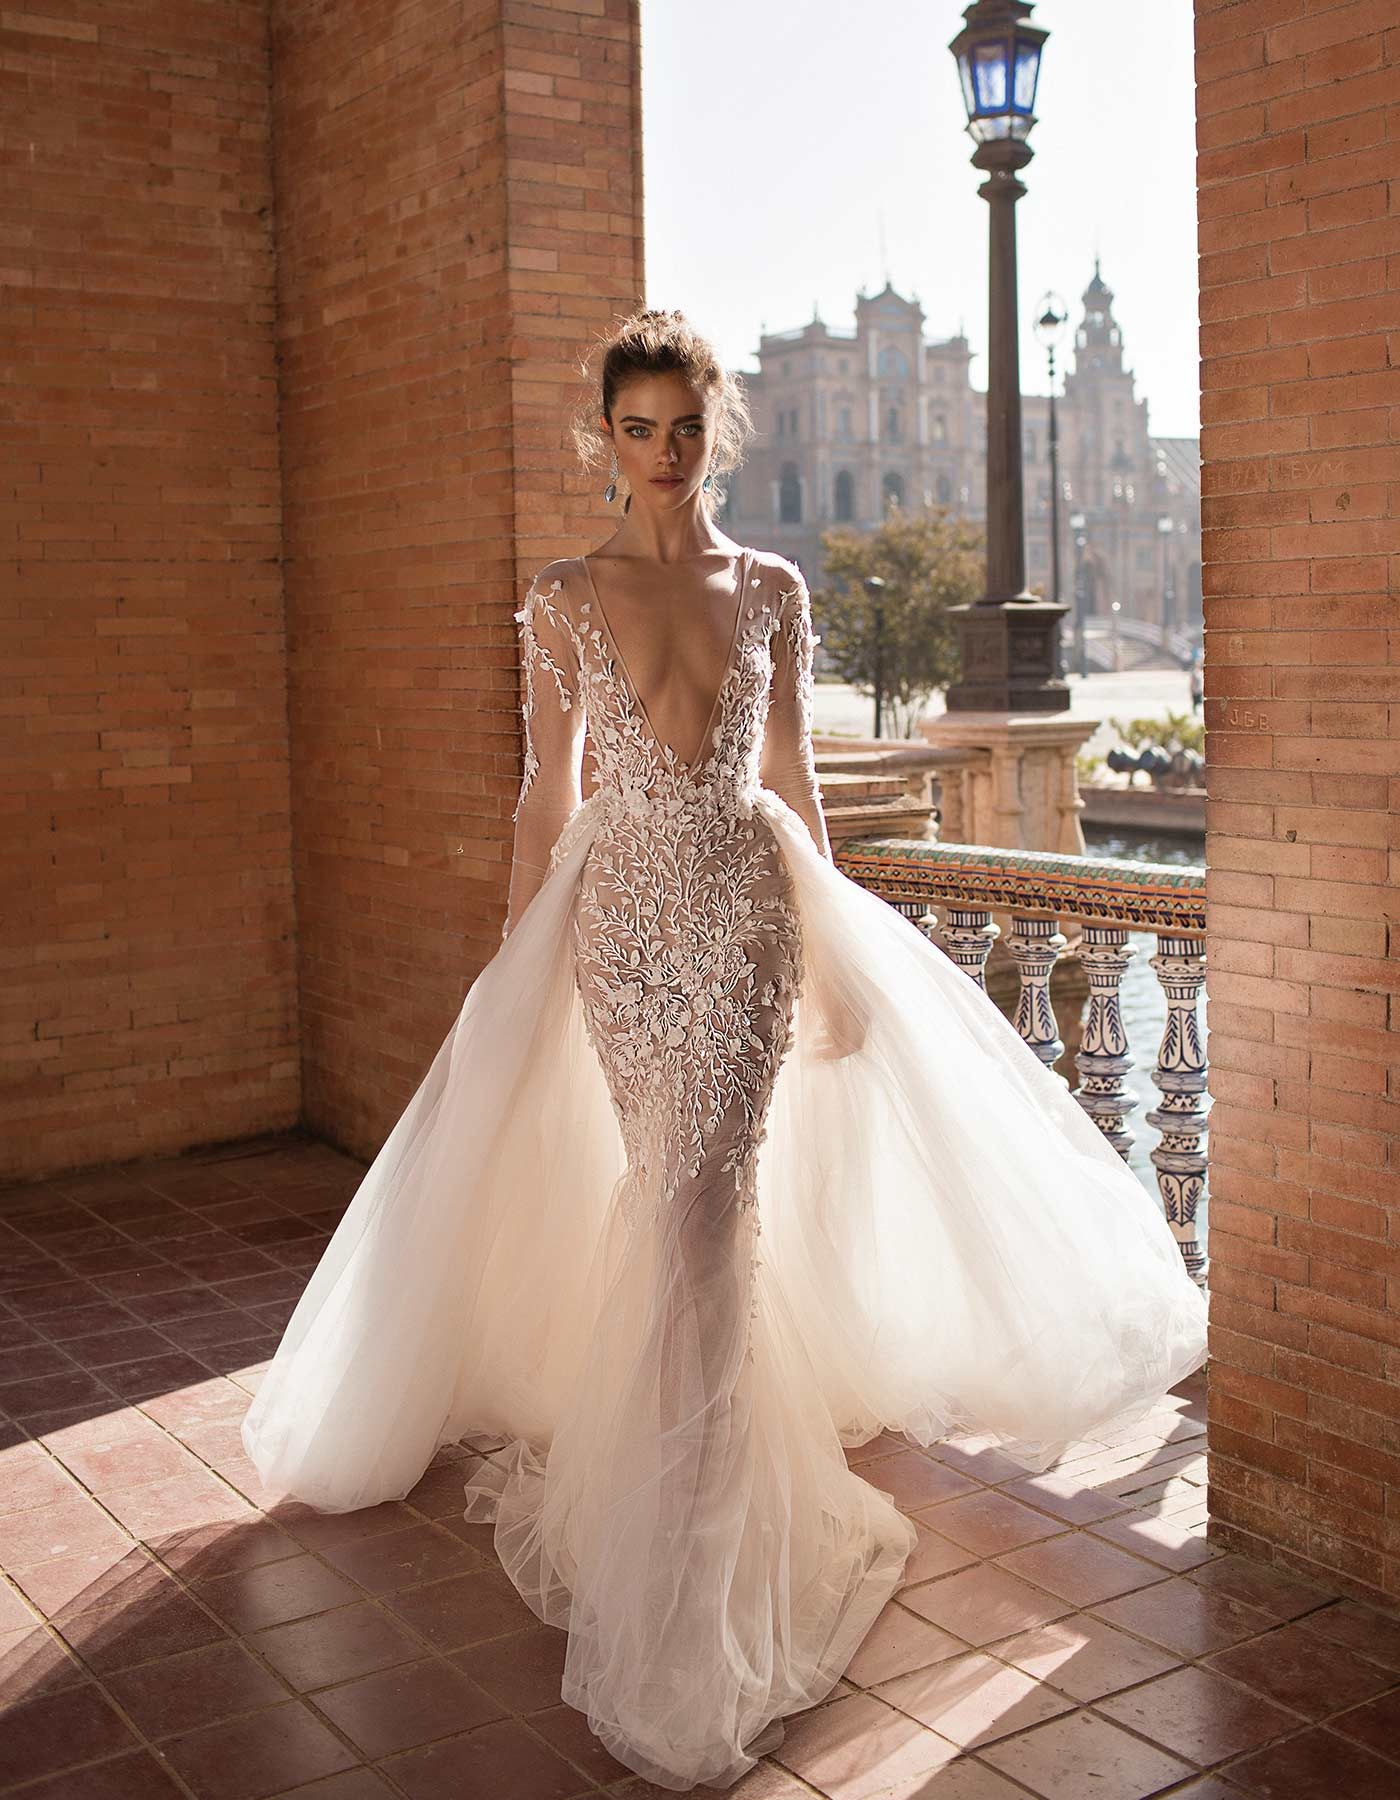 c93b4978bb13 Bridal Gowns · 18-116 from the Seville Collection. This Berta wedding dress  reveals a delicate flame